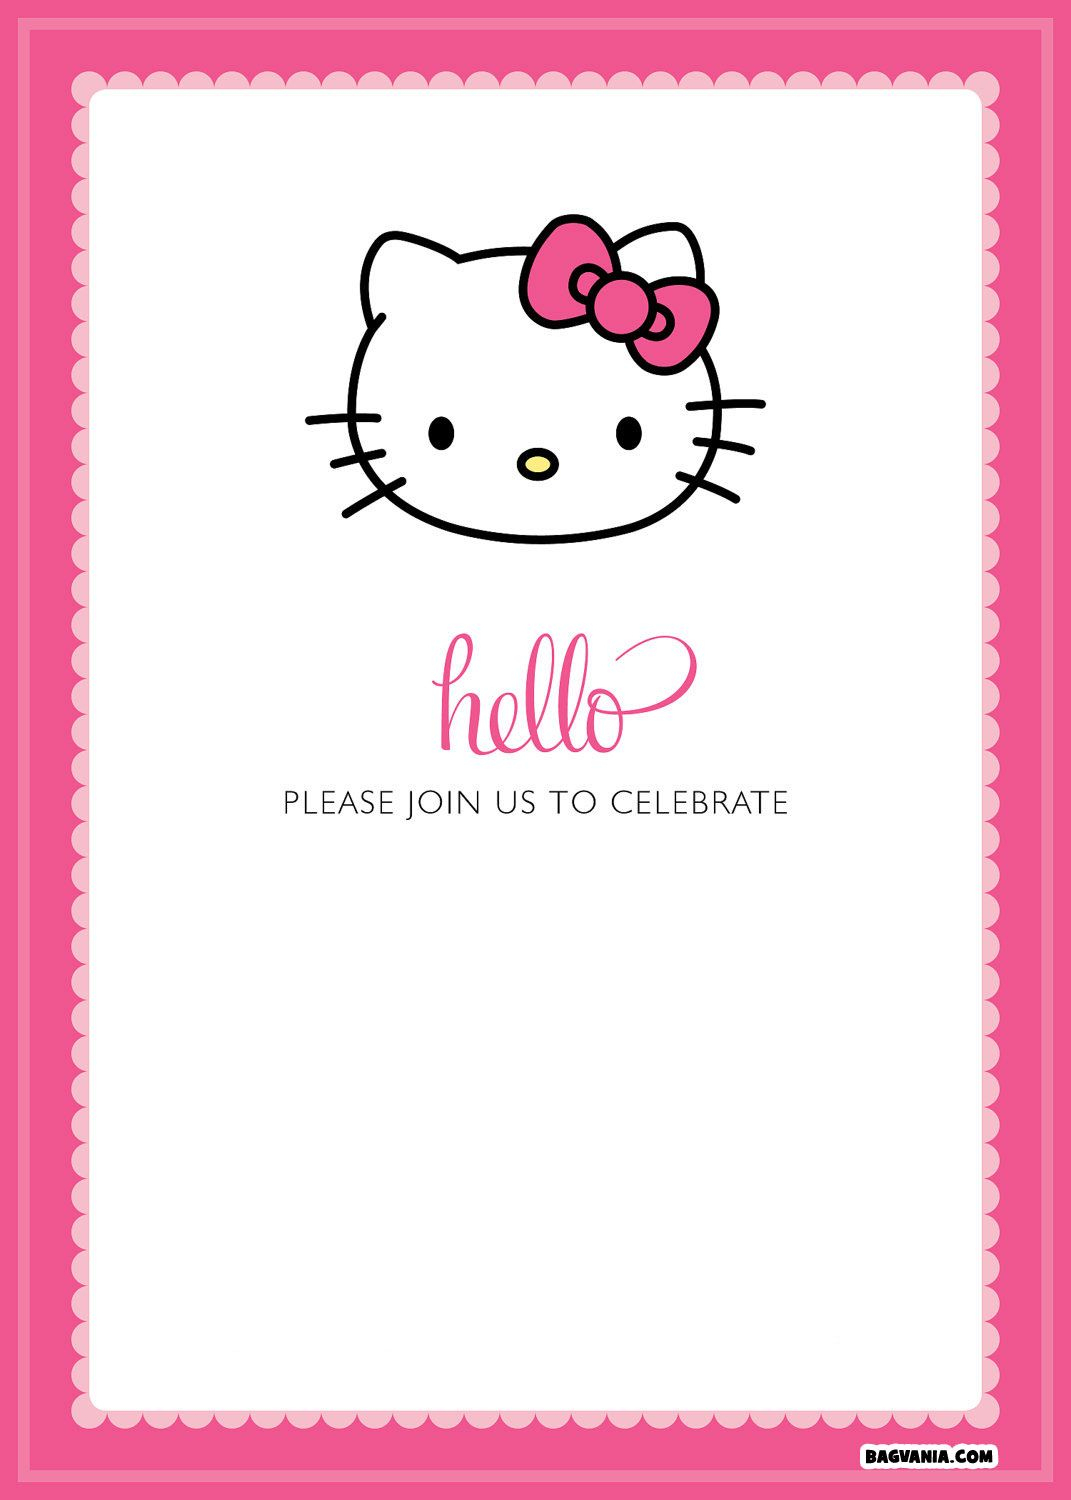 Free Printable Hello Kitty Birthday Invitations – Bagvania Free - Free Printable Hello Kitty Pictures